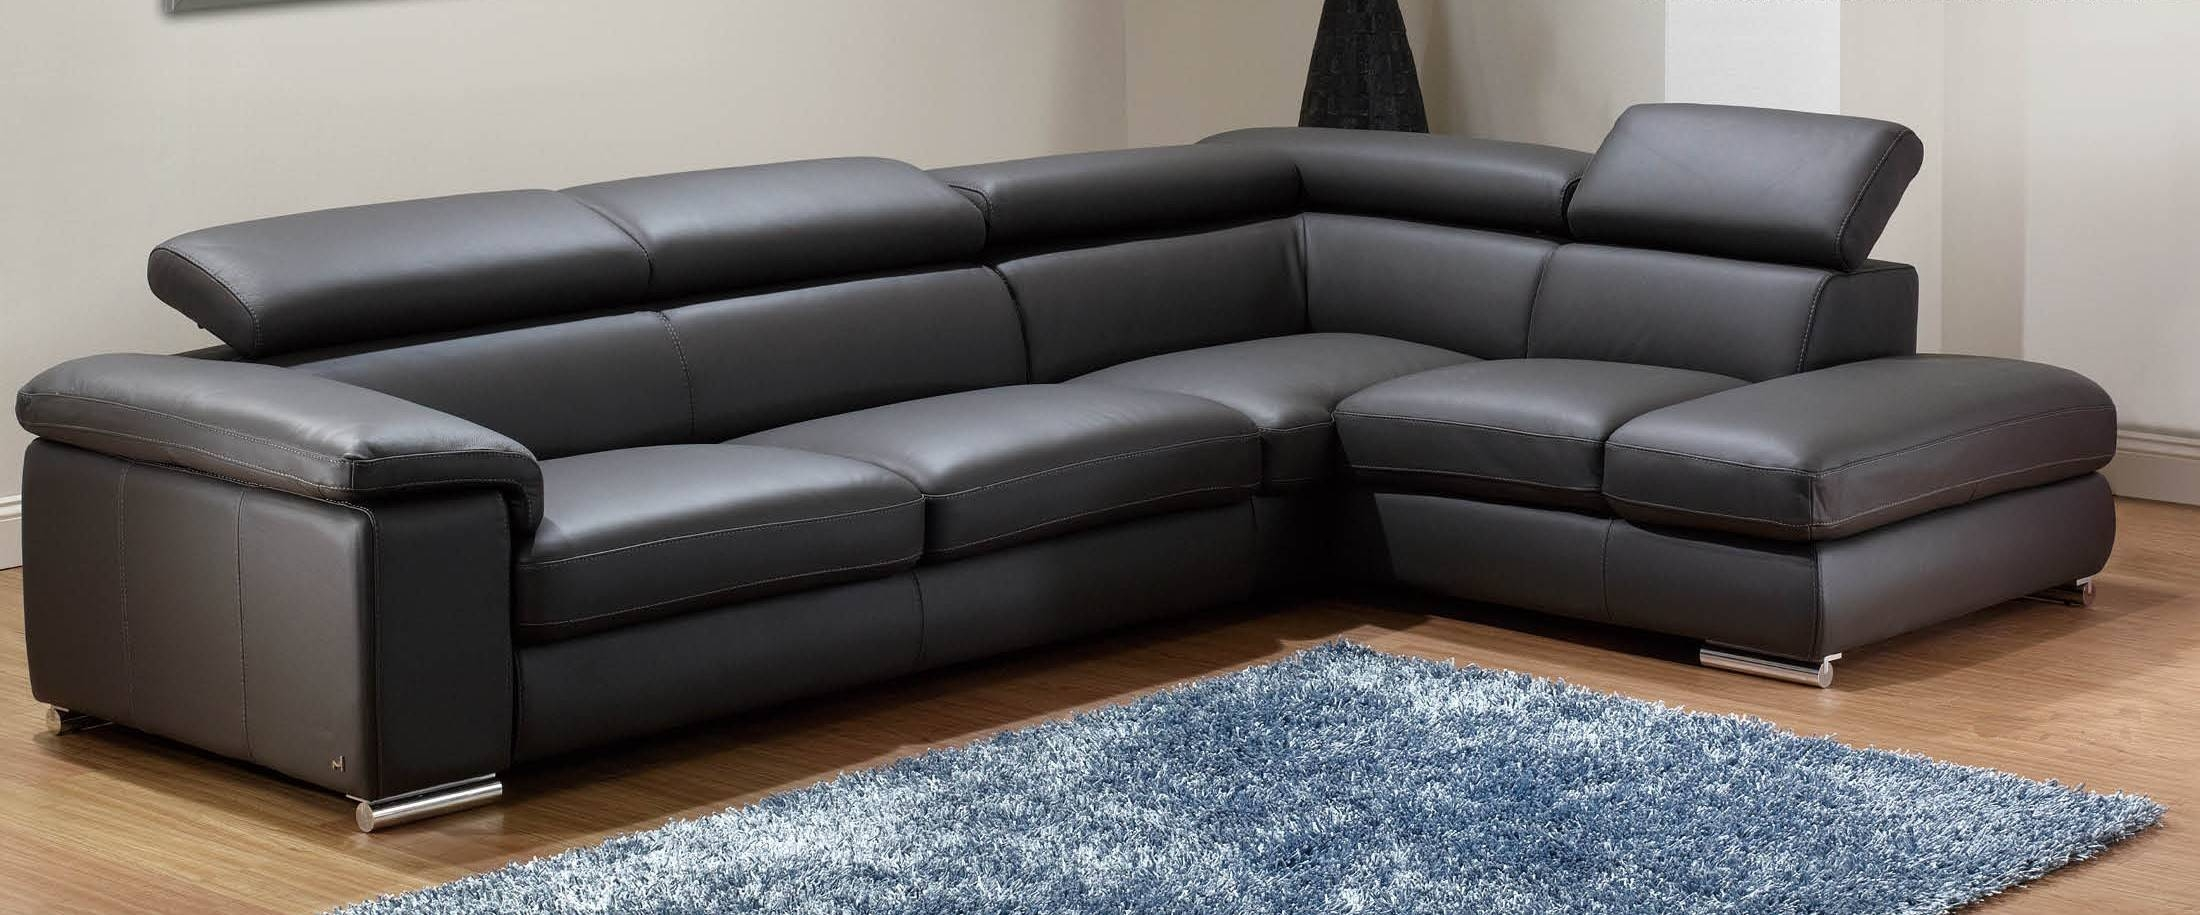 Angel Italian Leather Modern Sectional Sofa - S3Net - Sectional intended for Italian Recliner Sofas (Image 4 of 15)